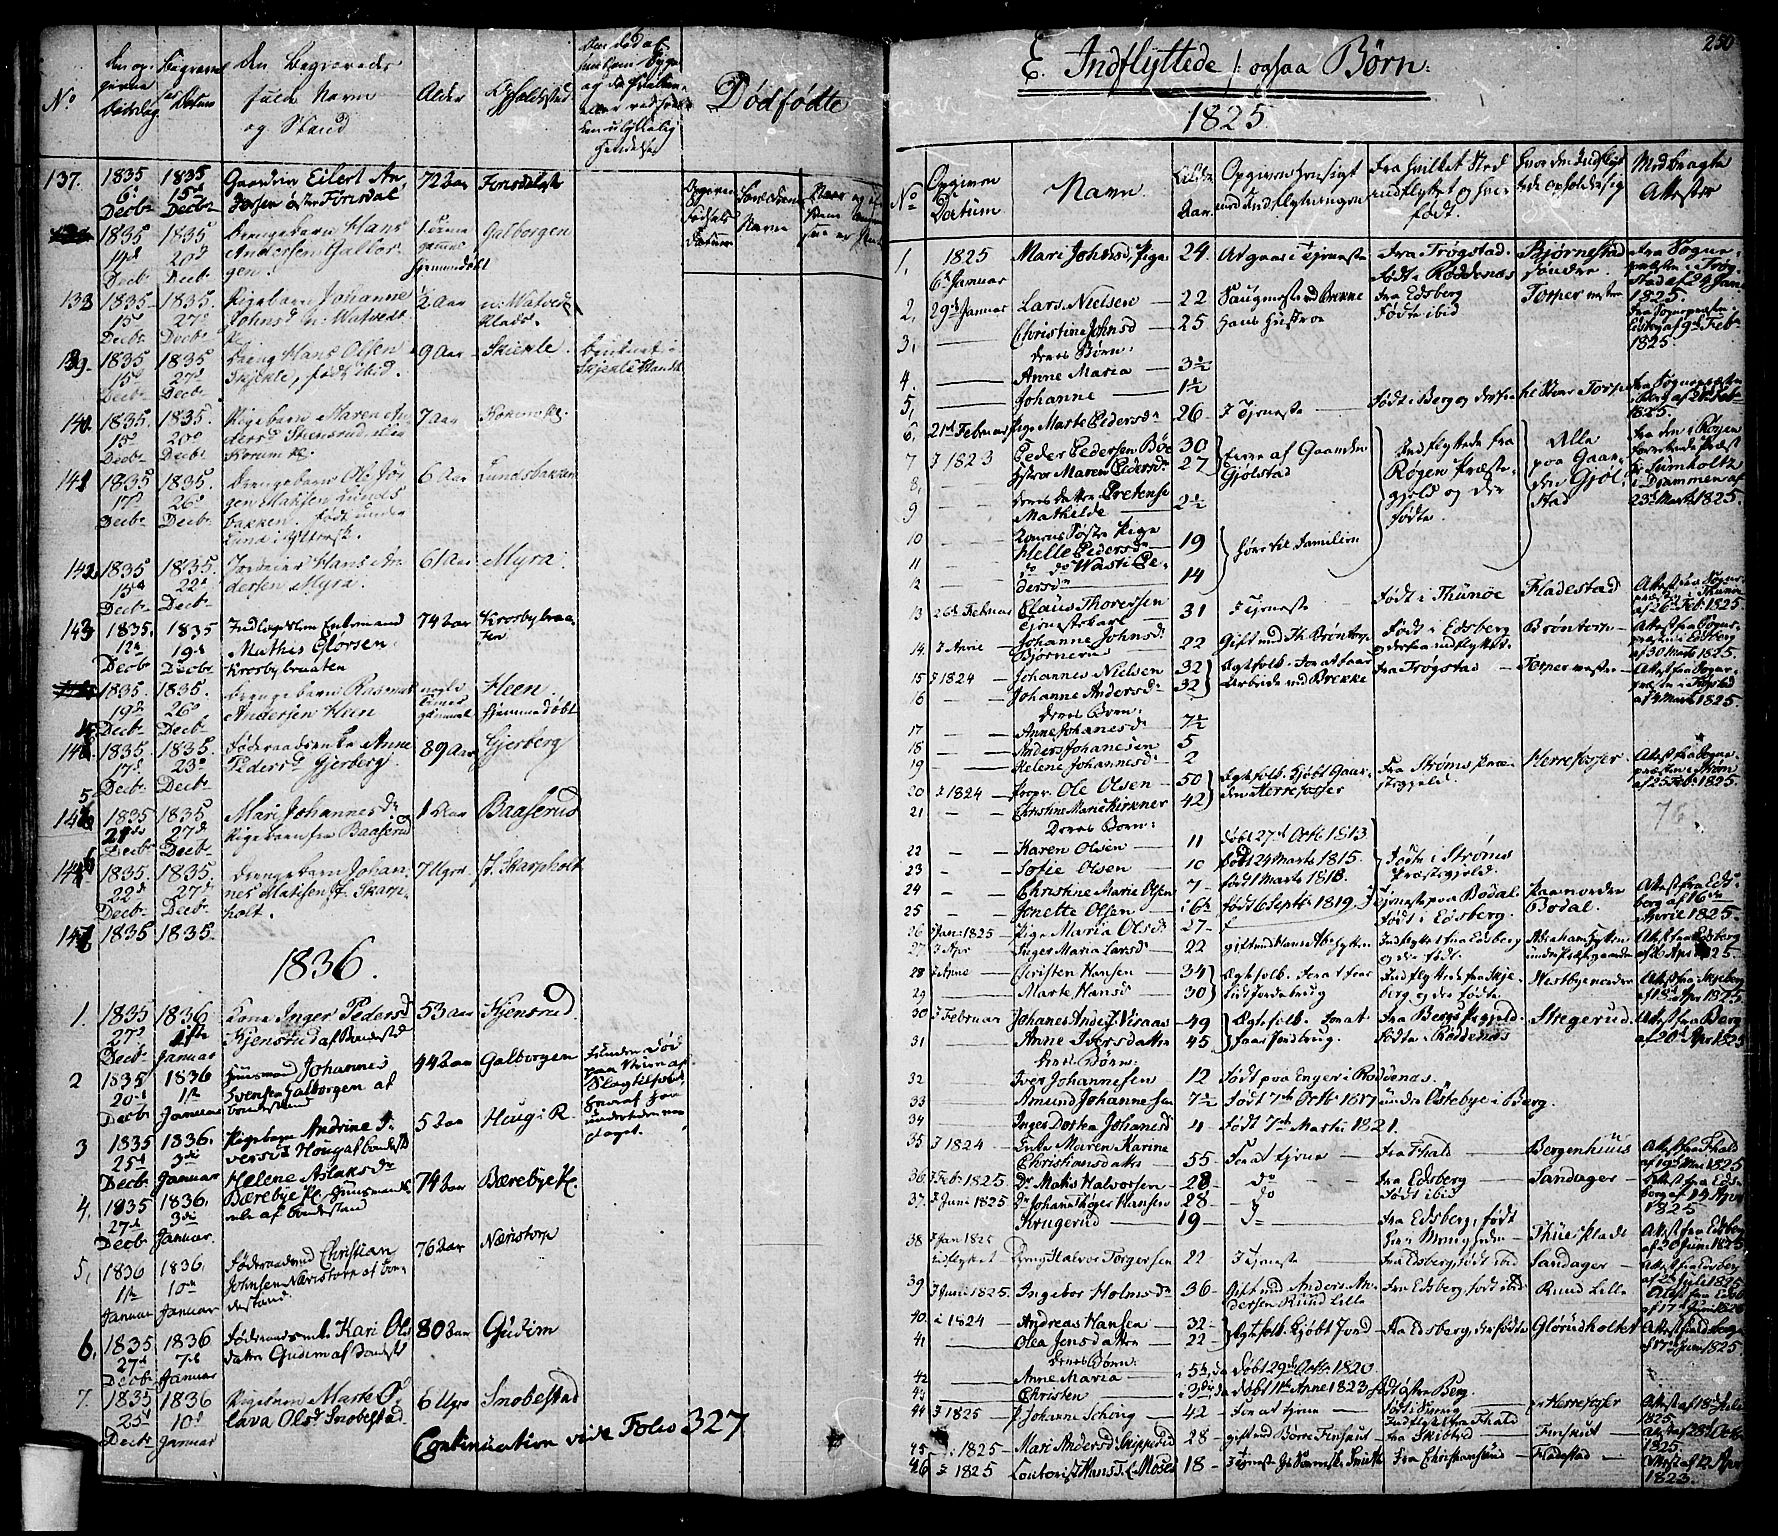 SAO, Rakkestad prestekontor Kirkebøker, F/Fa/L0007: Parish register (official) no. I 7, 1825-1841, p. 250